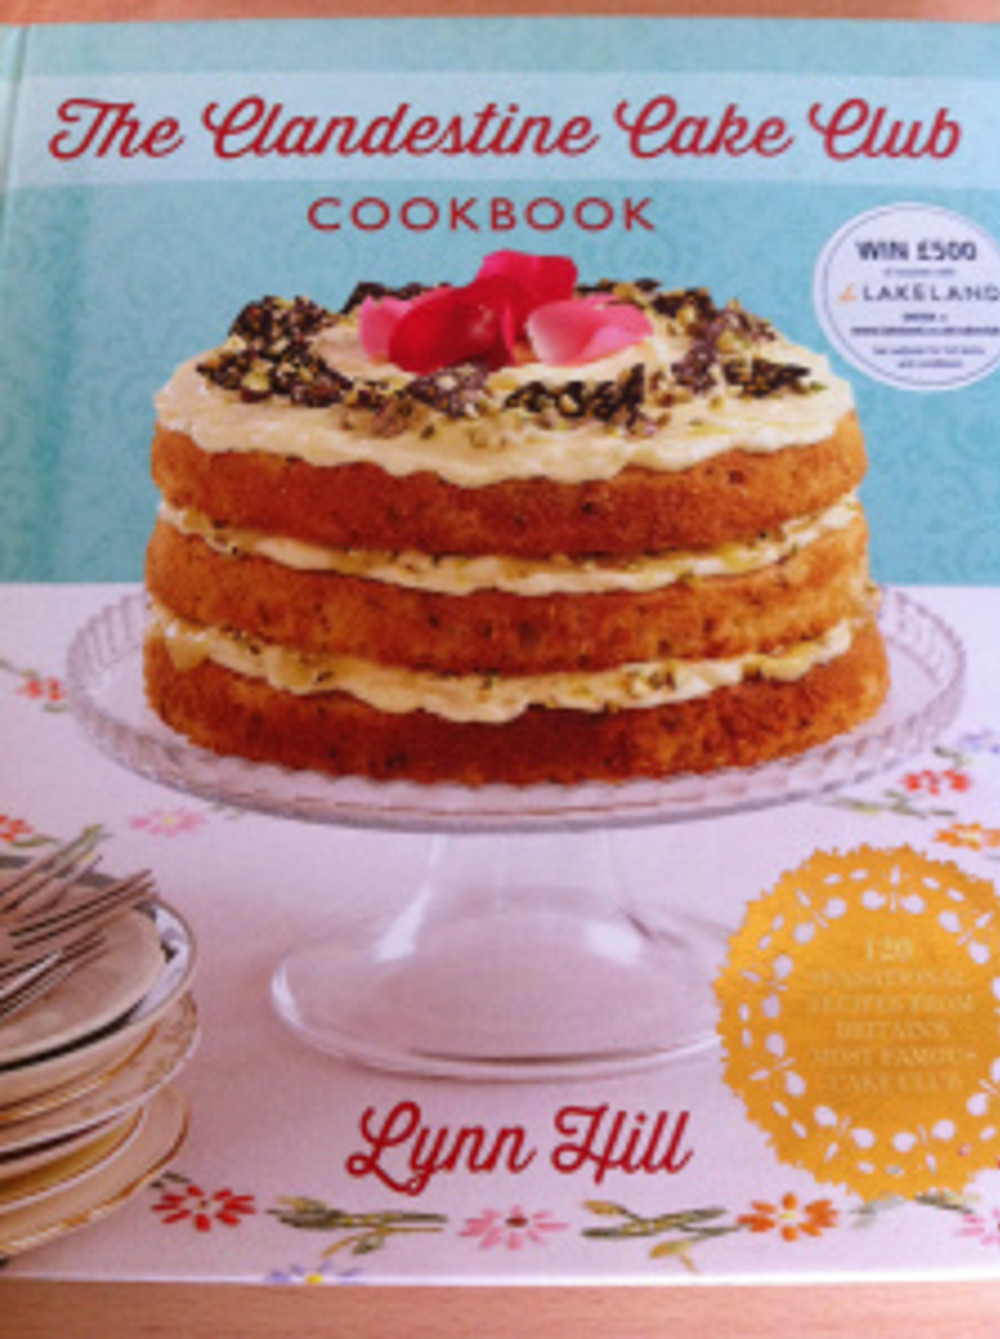 My favourite cookbook at the moment, the fabulous Clandestine Cake Club Cookbook available in all good bookshops!